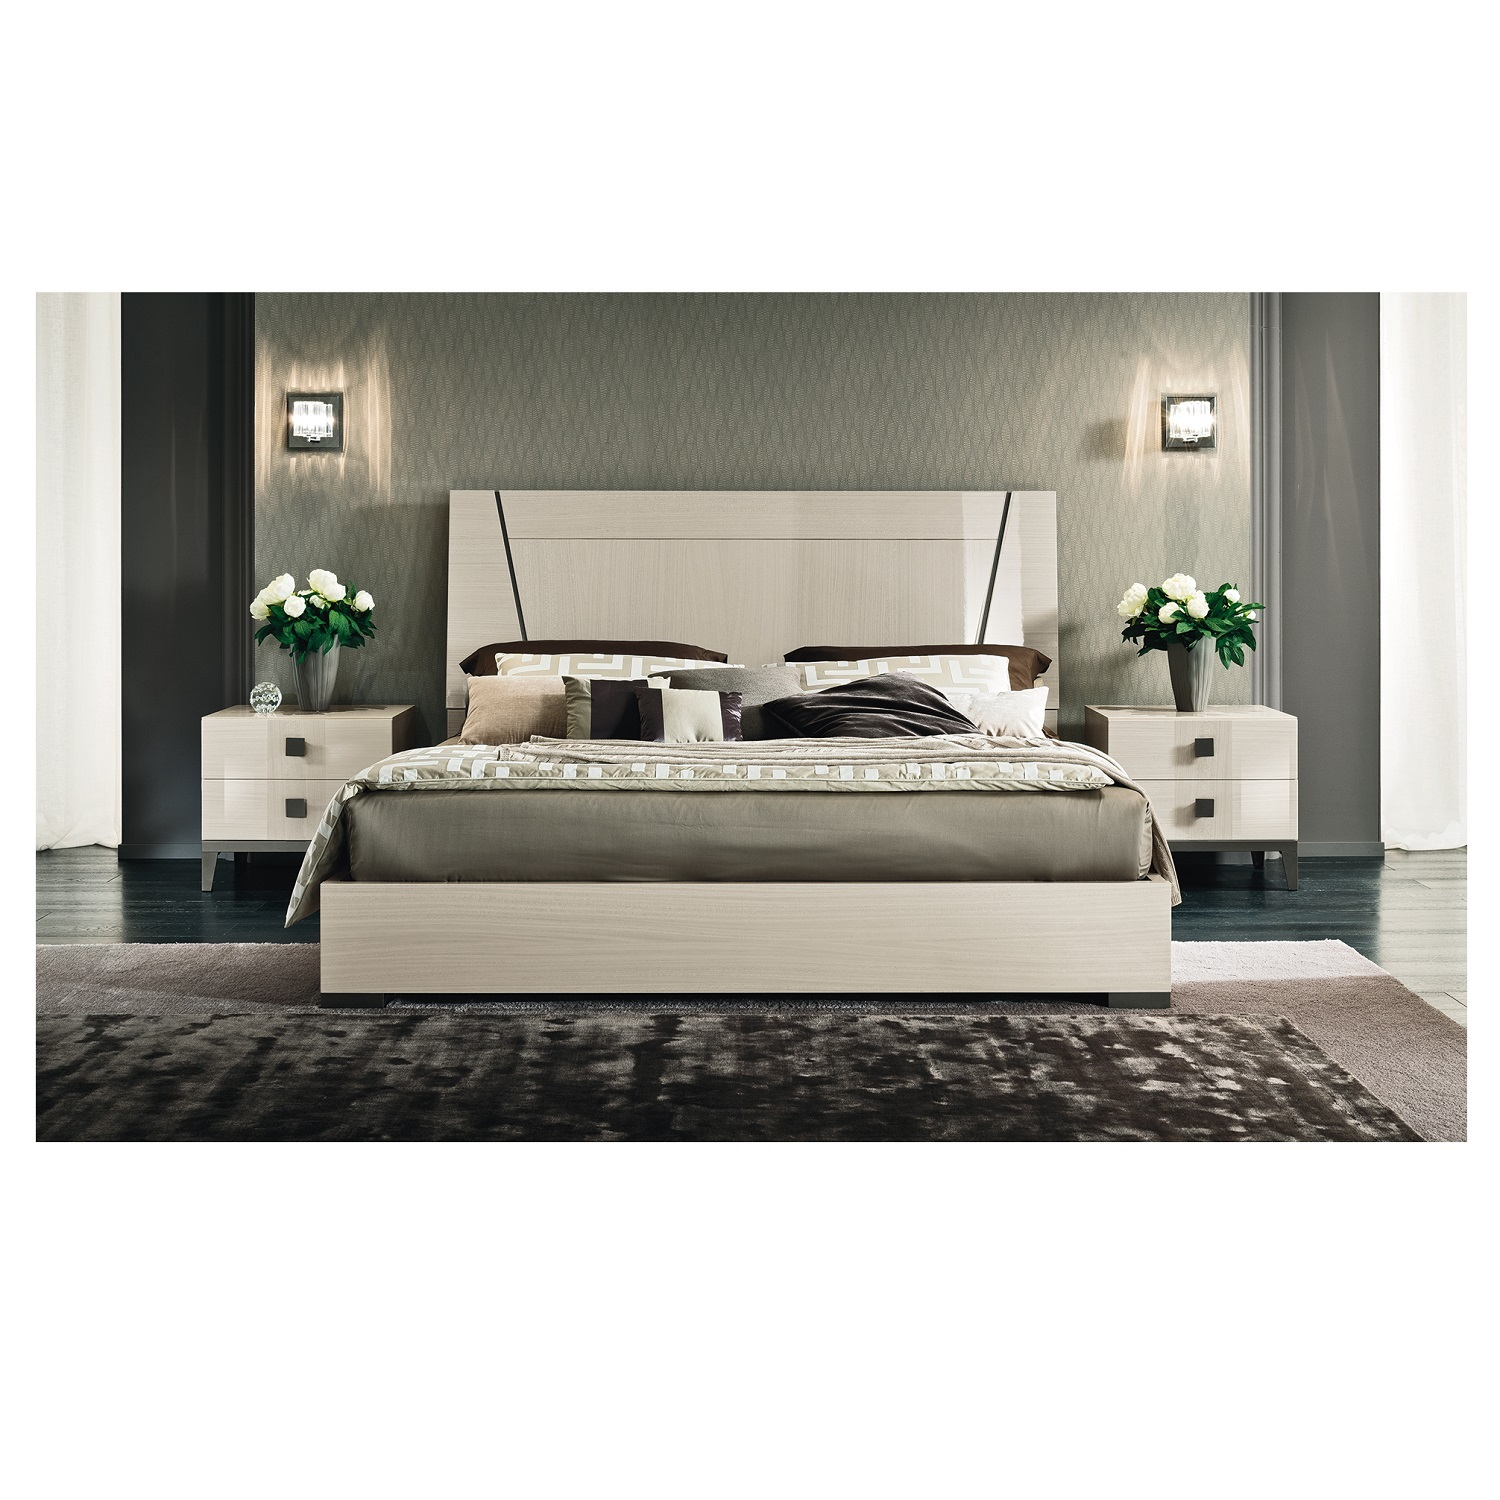 Bella Avorio California King Bed